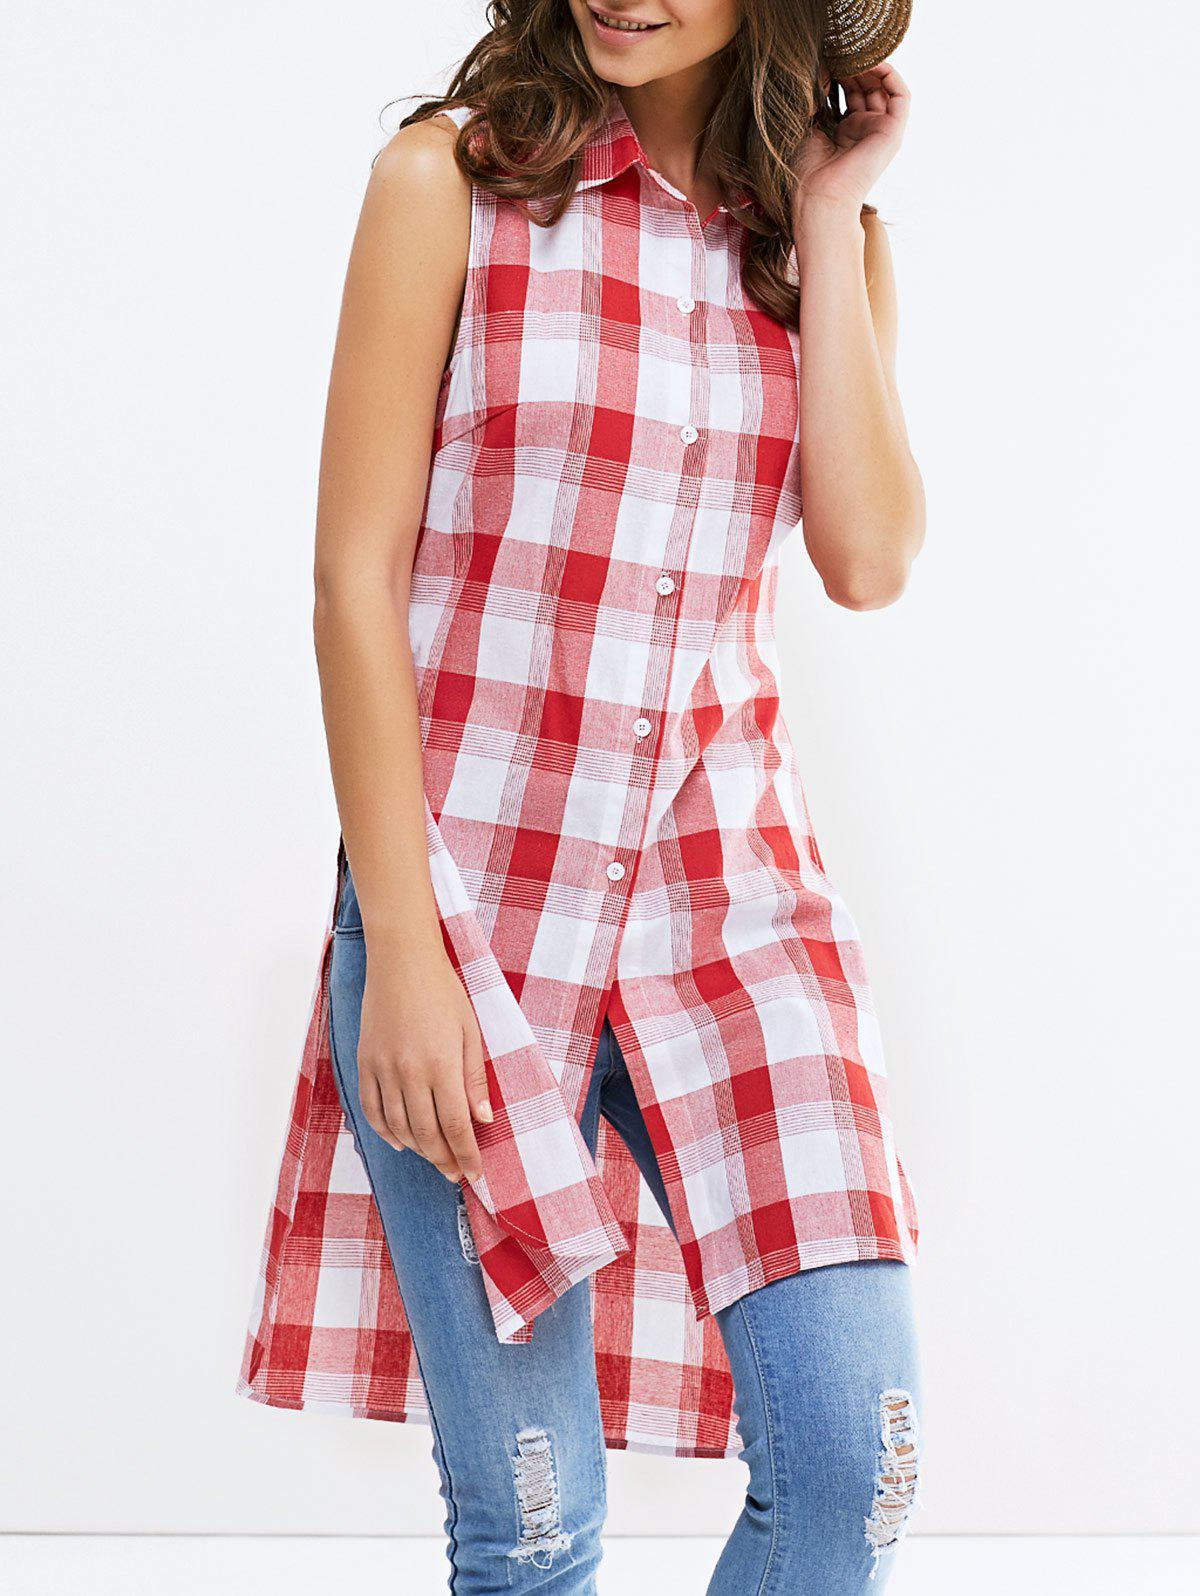 Fashionable Shirt Collar Broadside Slit Sleeveless Lattice Shirt For Woman - RED/WHITE S